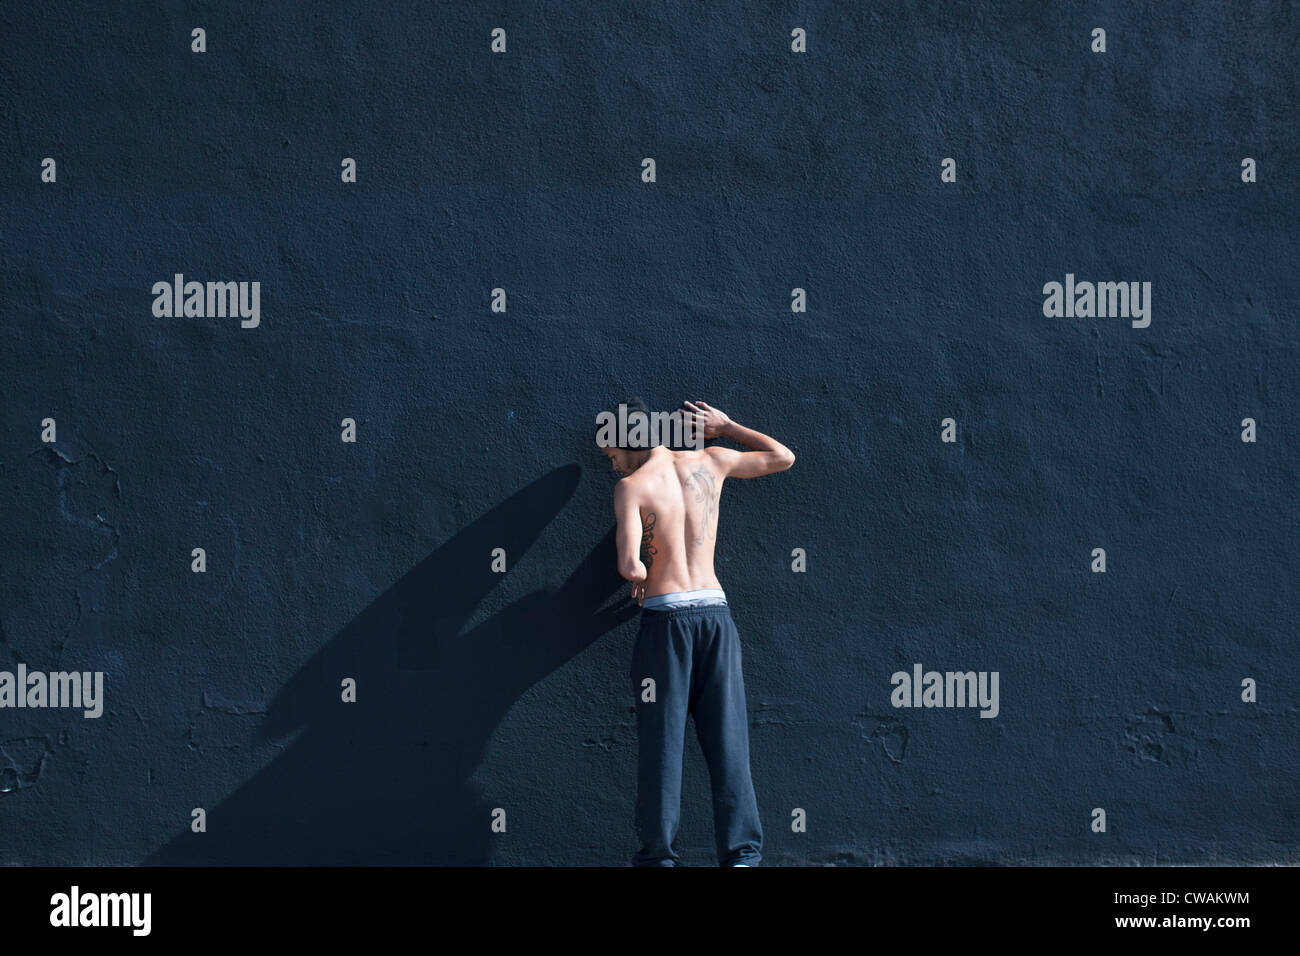 Barchested man leaning against a wall - Stock Image